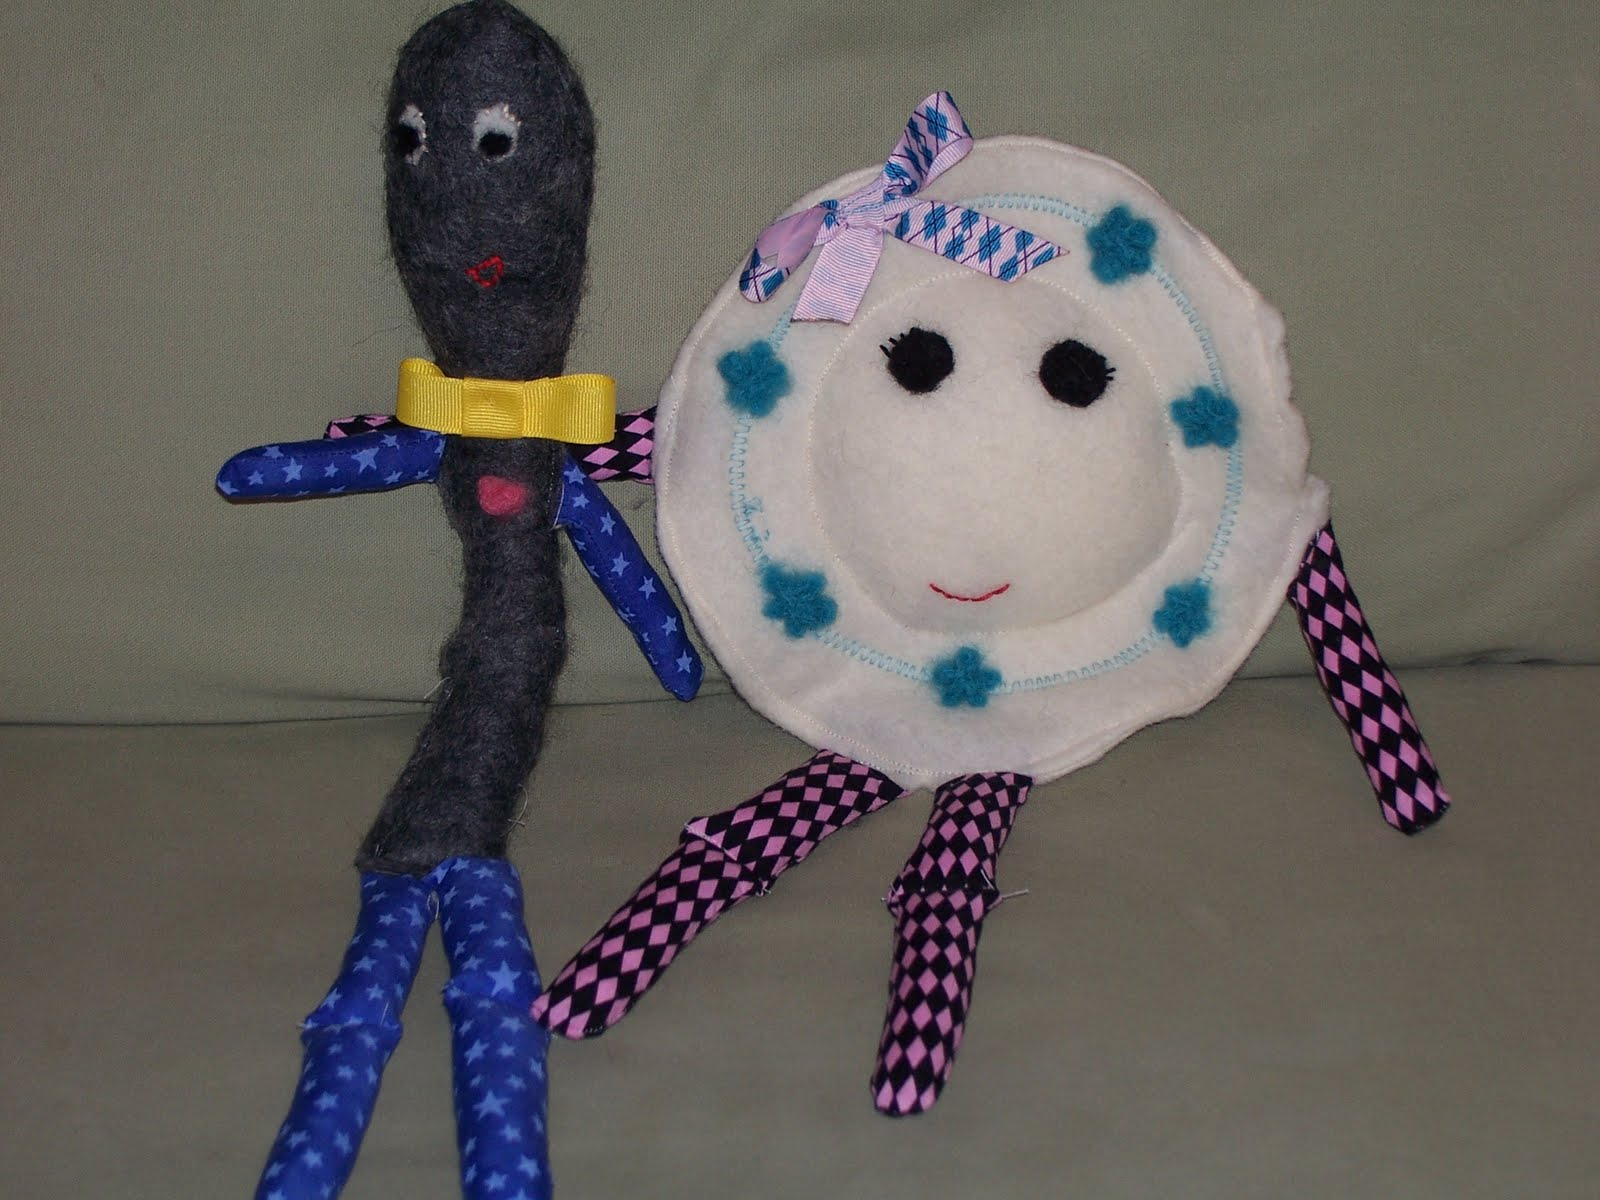 http://craftymomsshare.blogspot.com/2011/09/my-adventures-in-needle-felting.html